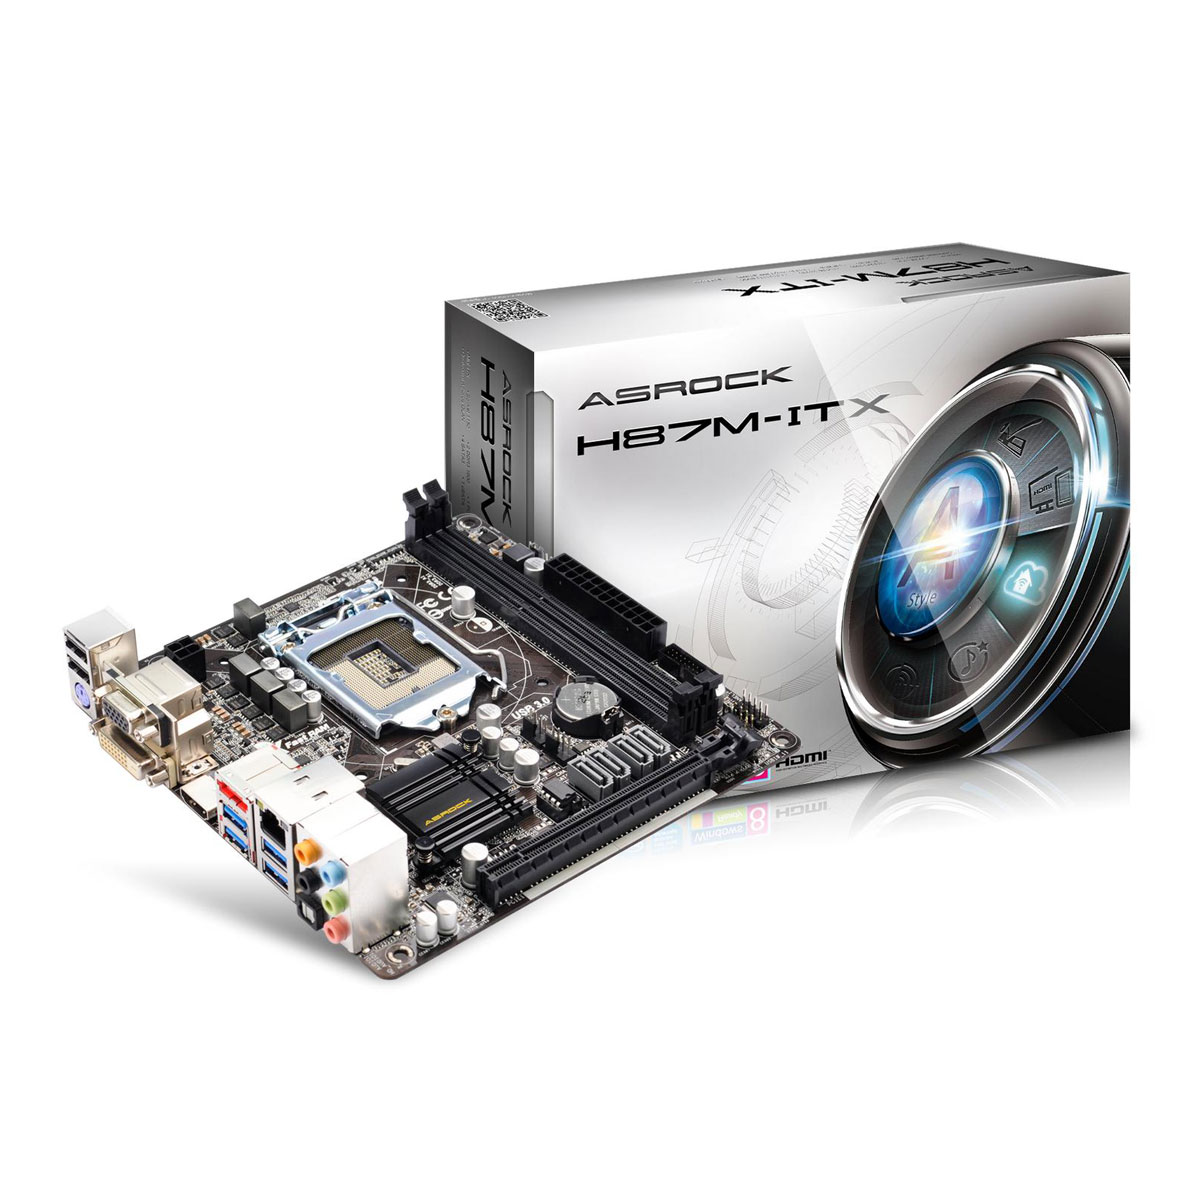 Carte mère ASRock H87M-ITX Carte mère Mini ITX Socket 1150 Intel H87 Express - SATA 6Gb/s - USB 3.0 - 1x PCI-Express 3.0 16x